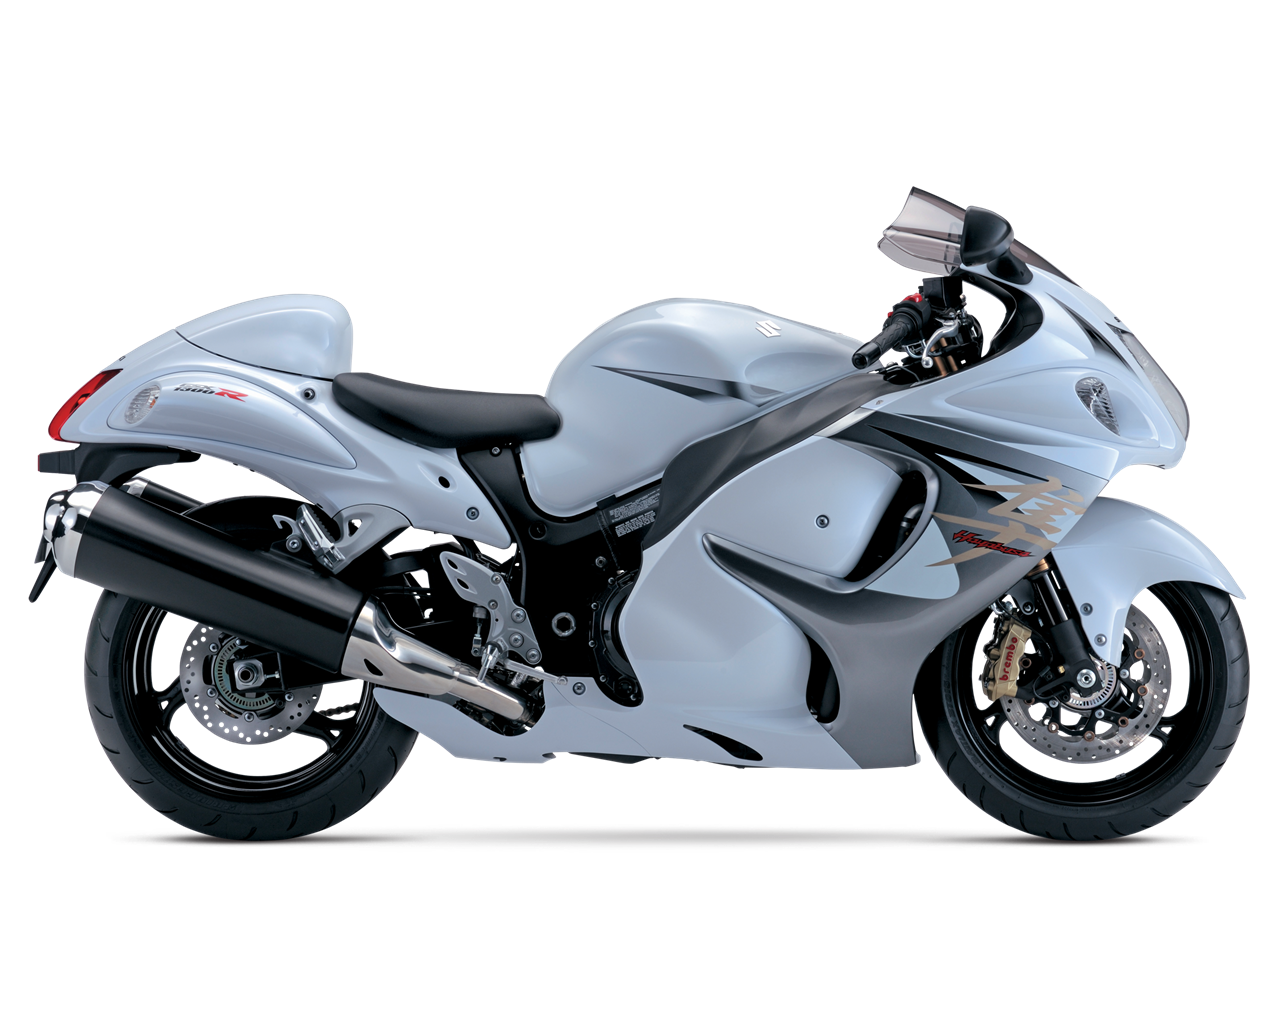 2013 suzuki hayabusa coming soon - autocar india